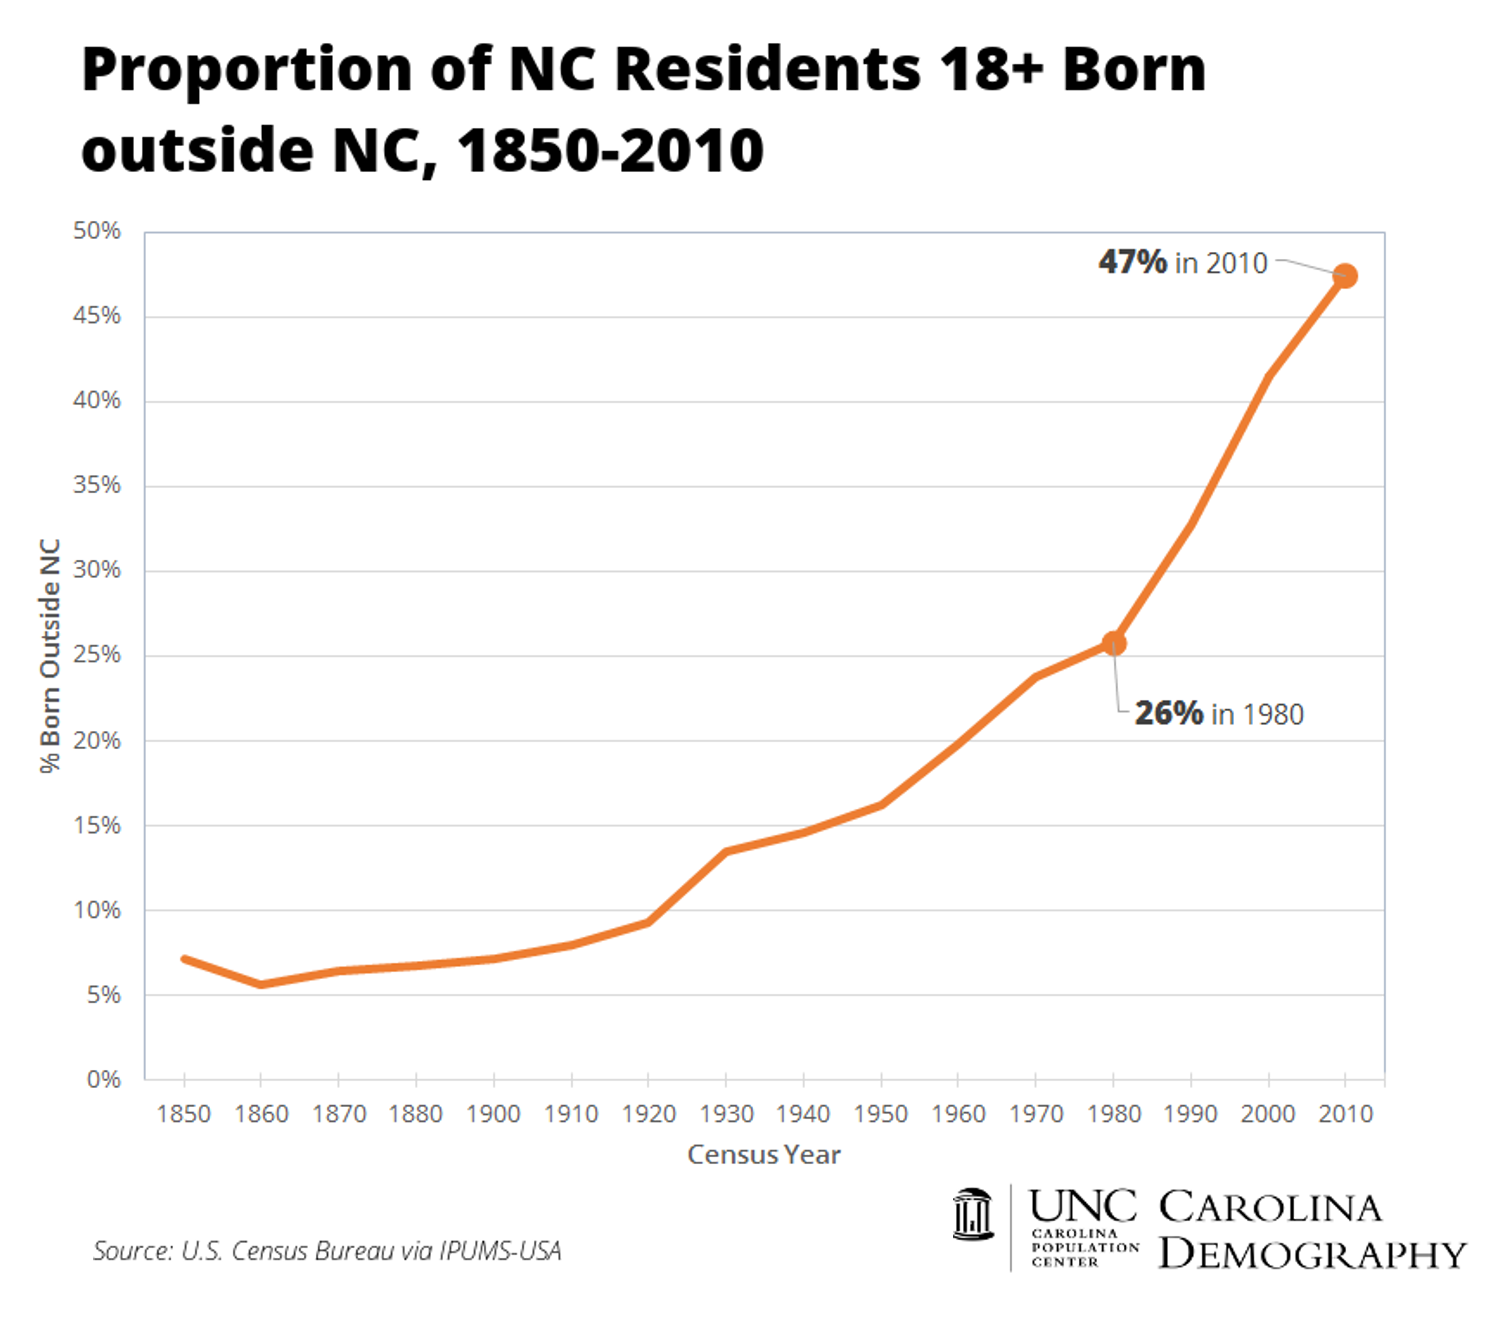 Non Native NC Adults